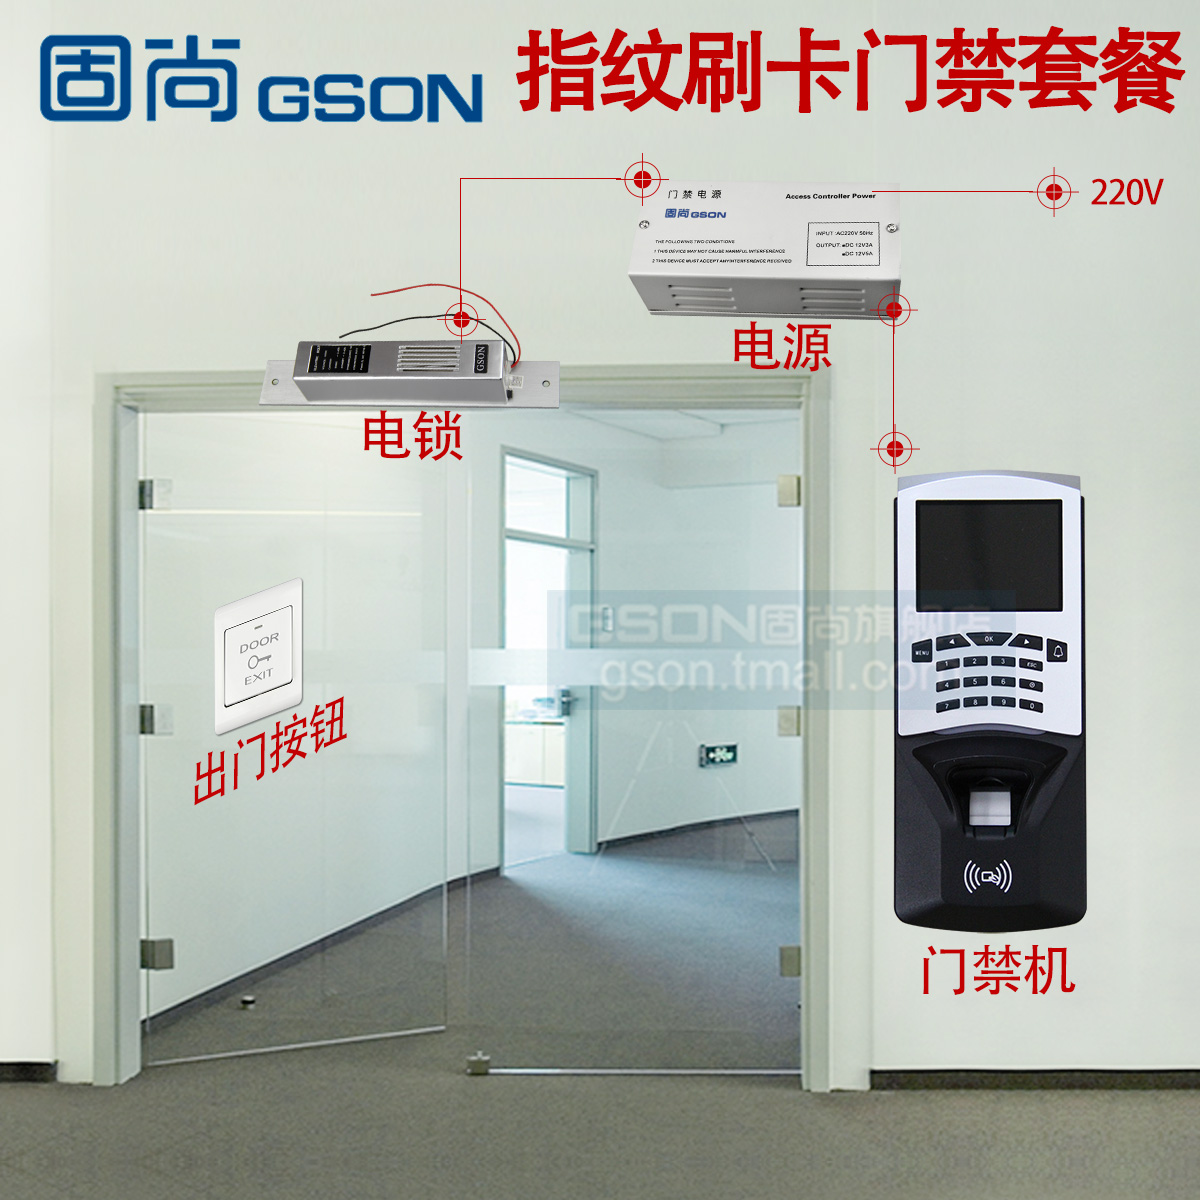 Gson solid yet have one machine fingerprint card password access control system access control systems access the entire suite package installation